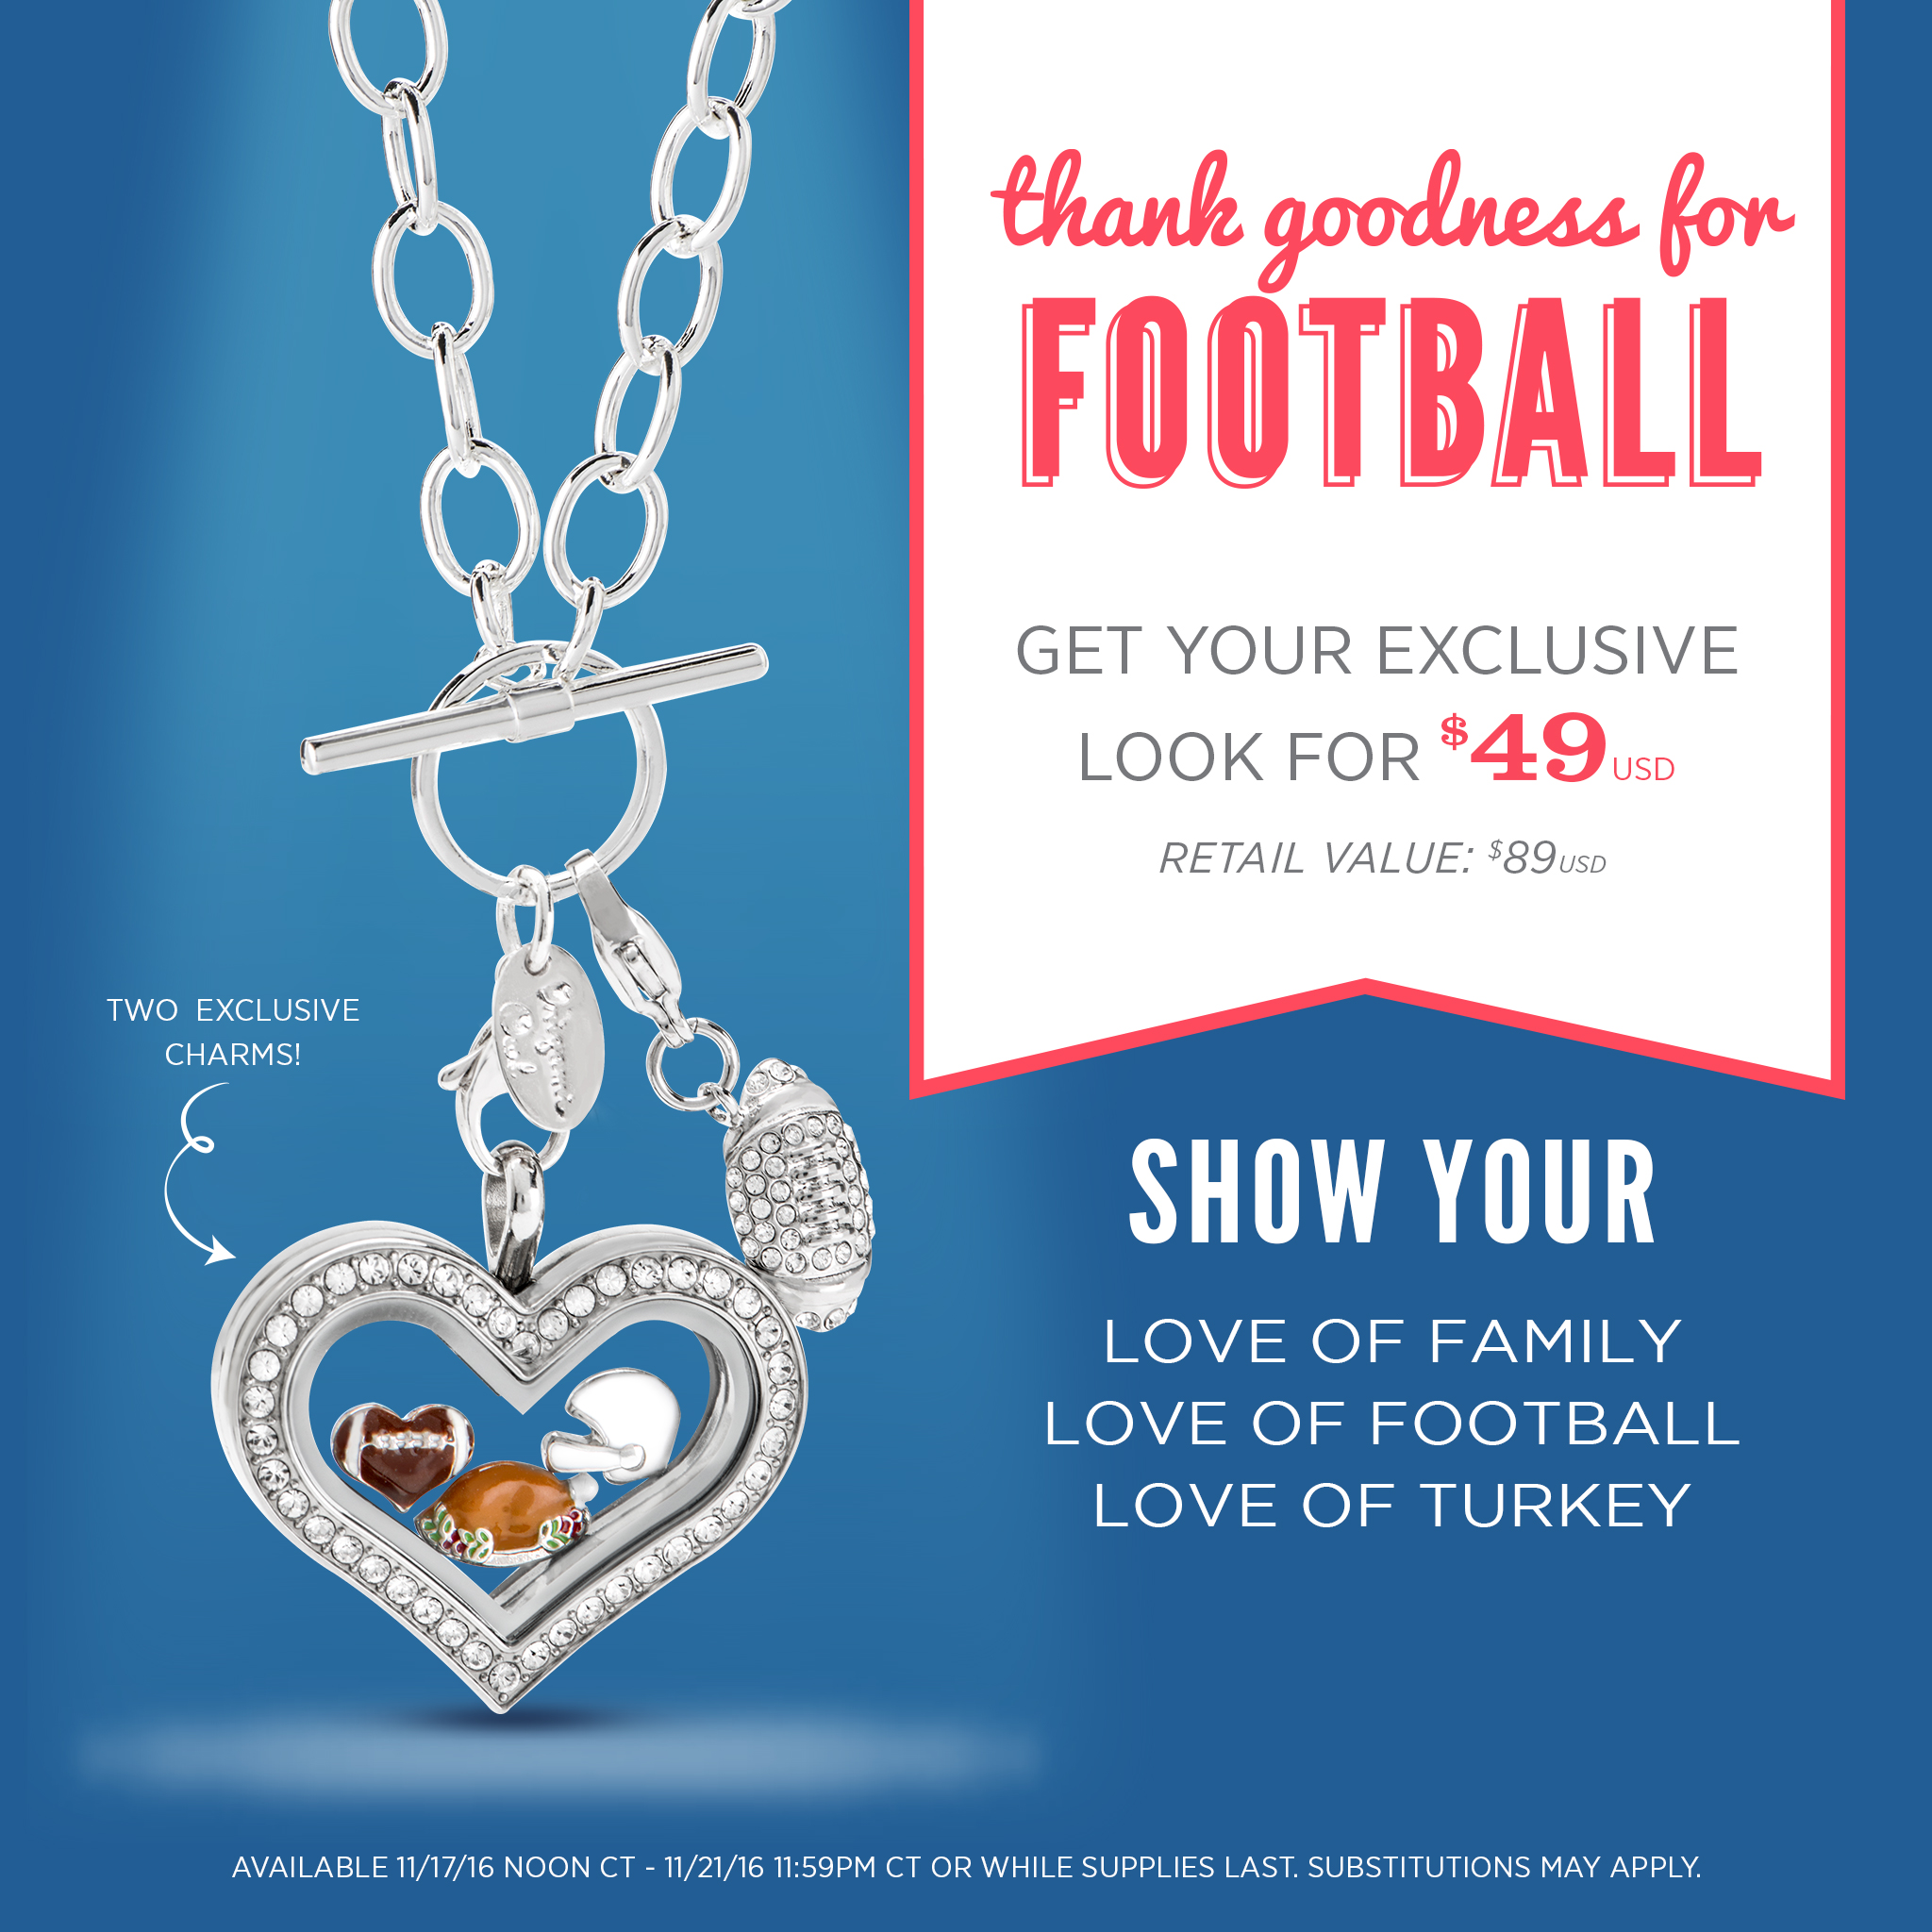 Limited time thank goodness for football offer origamiowlnews us thank goodness for football asset 1 jeuxipadfo Images